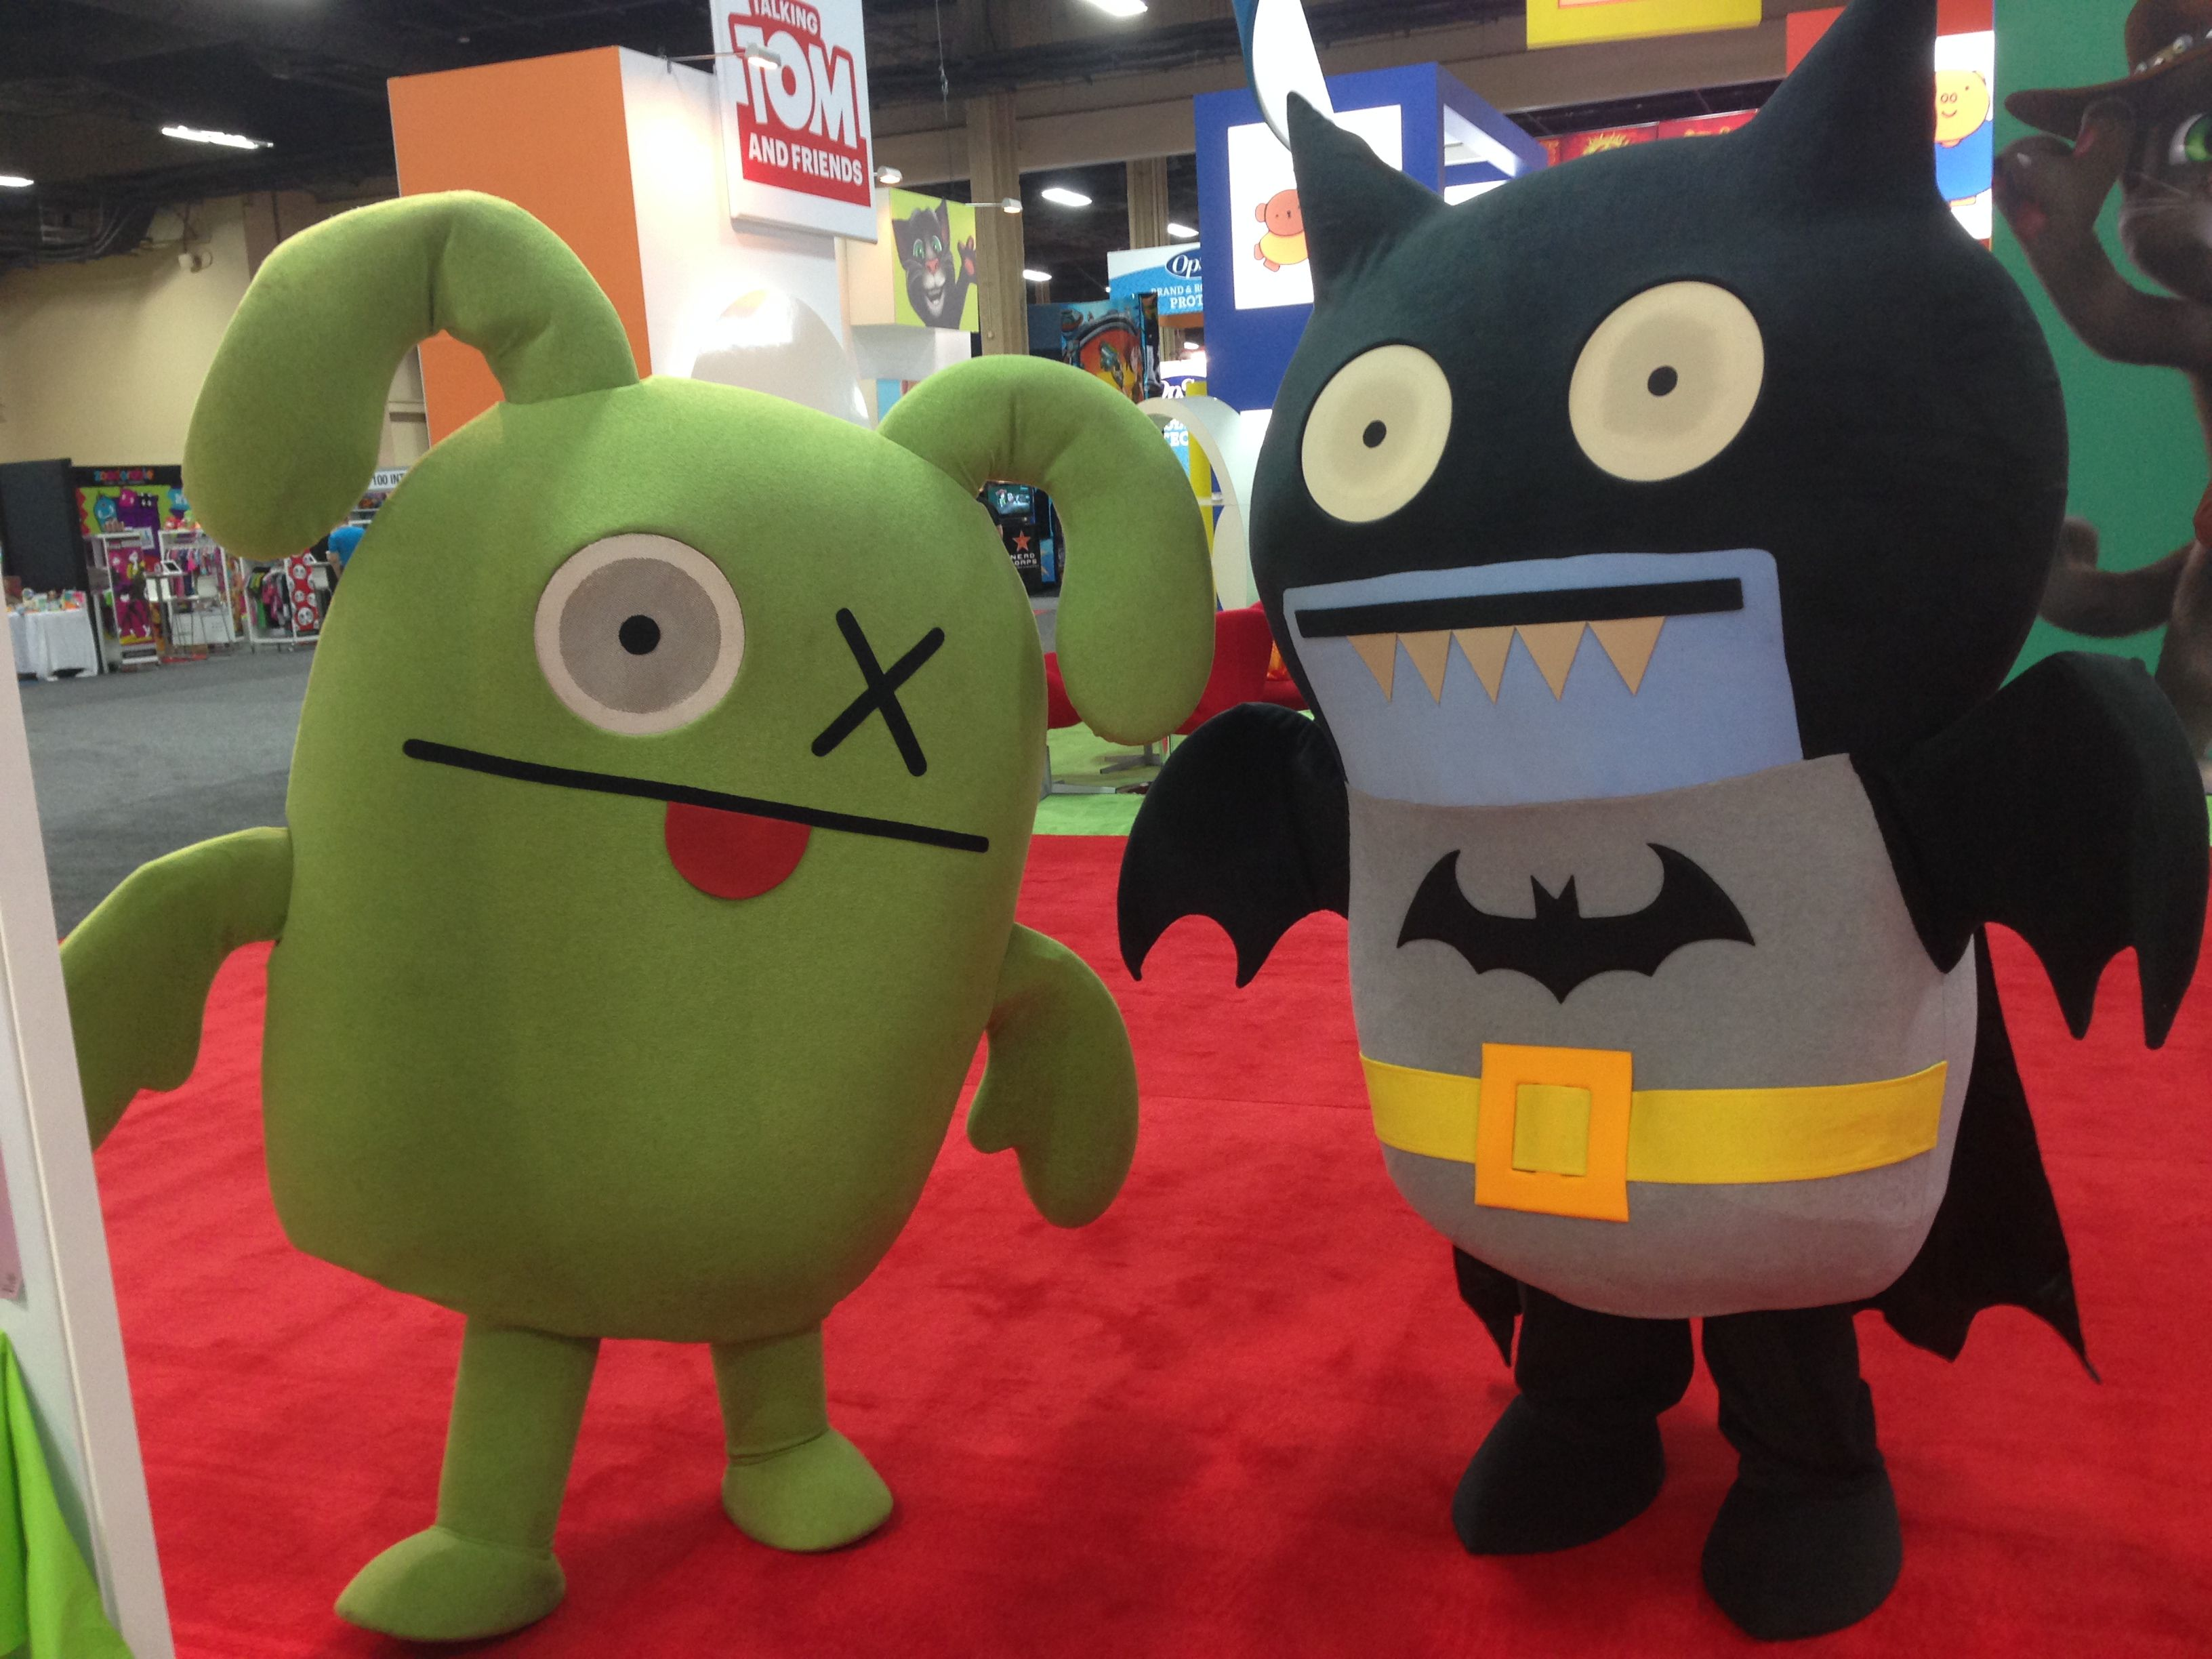 Ox and icebat welcoming booth visitors batman licensing show